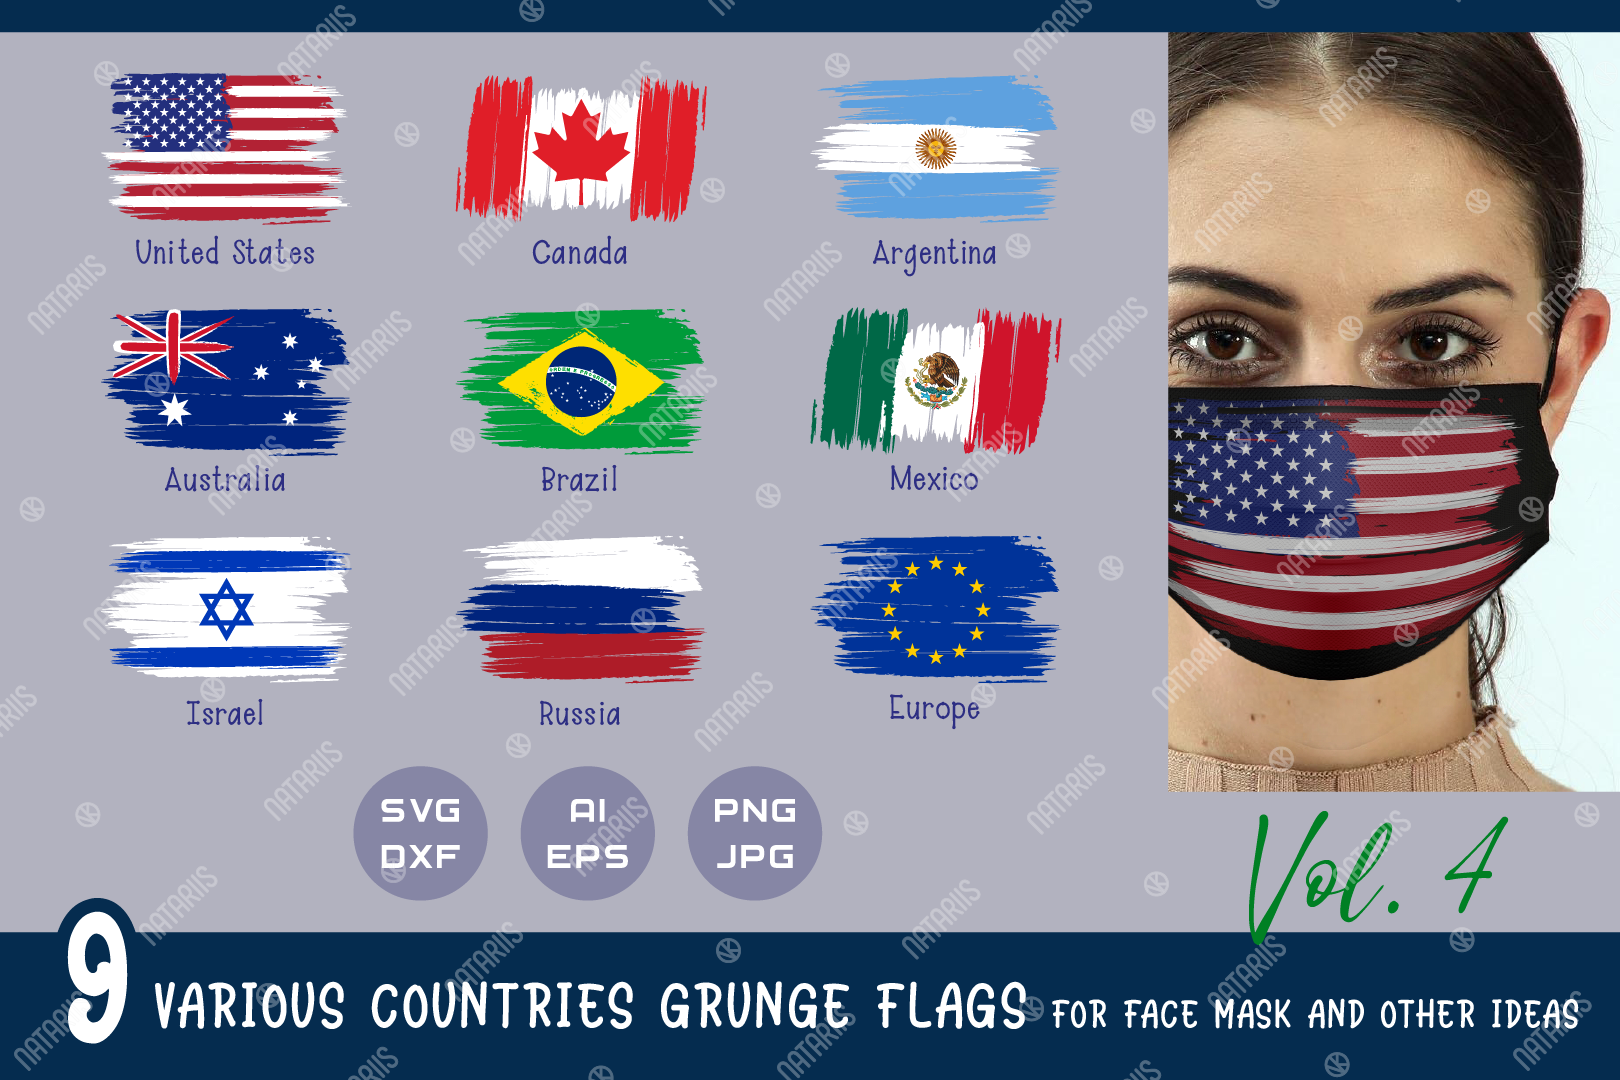 Download Free 9 Various Countries Grunge Flags Graphic By Natariis Studio Creative Fabrica for Cricut Explore, Silhouette and other cutting machines.